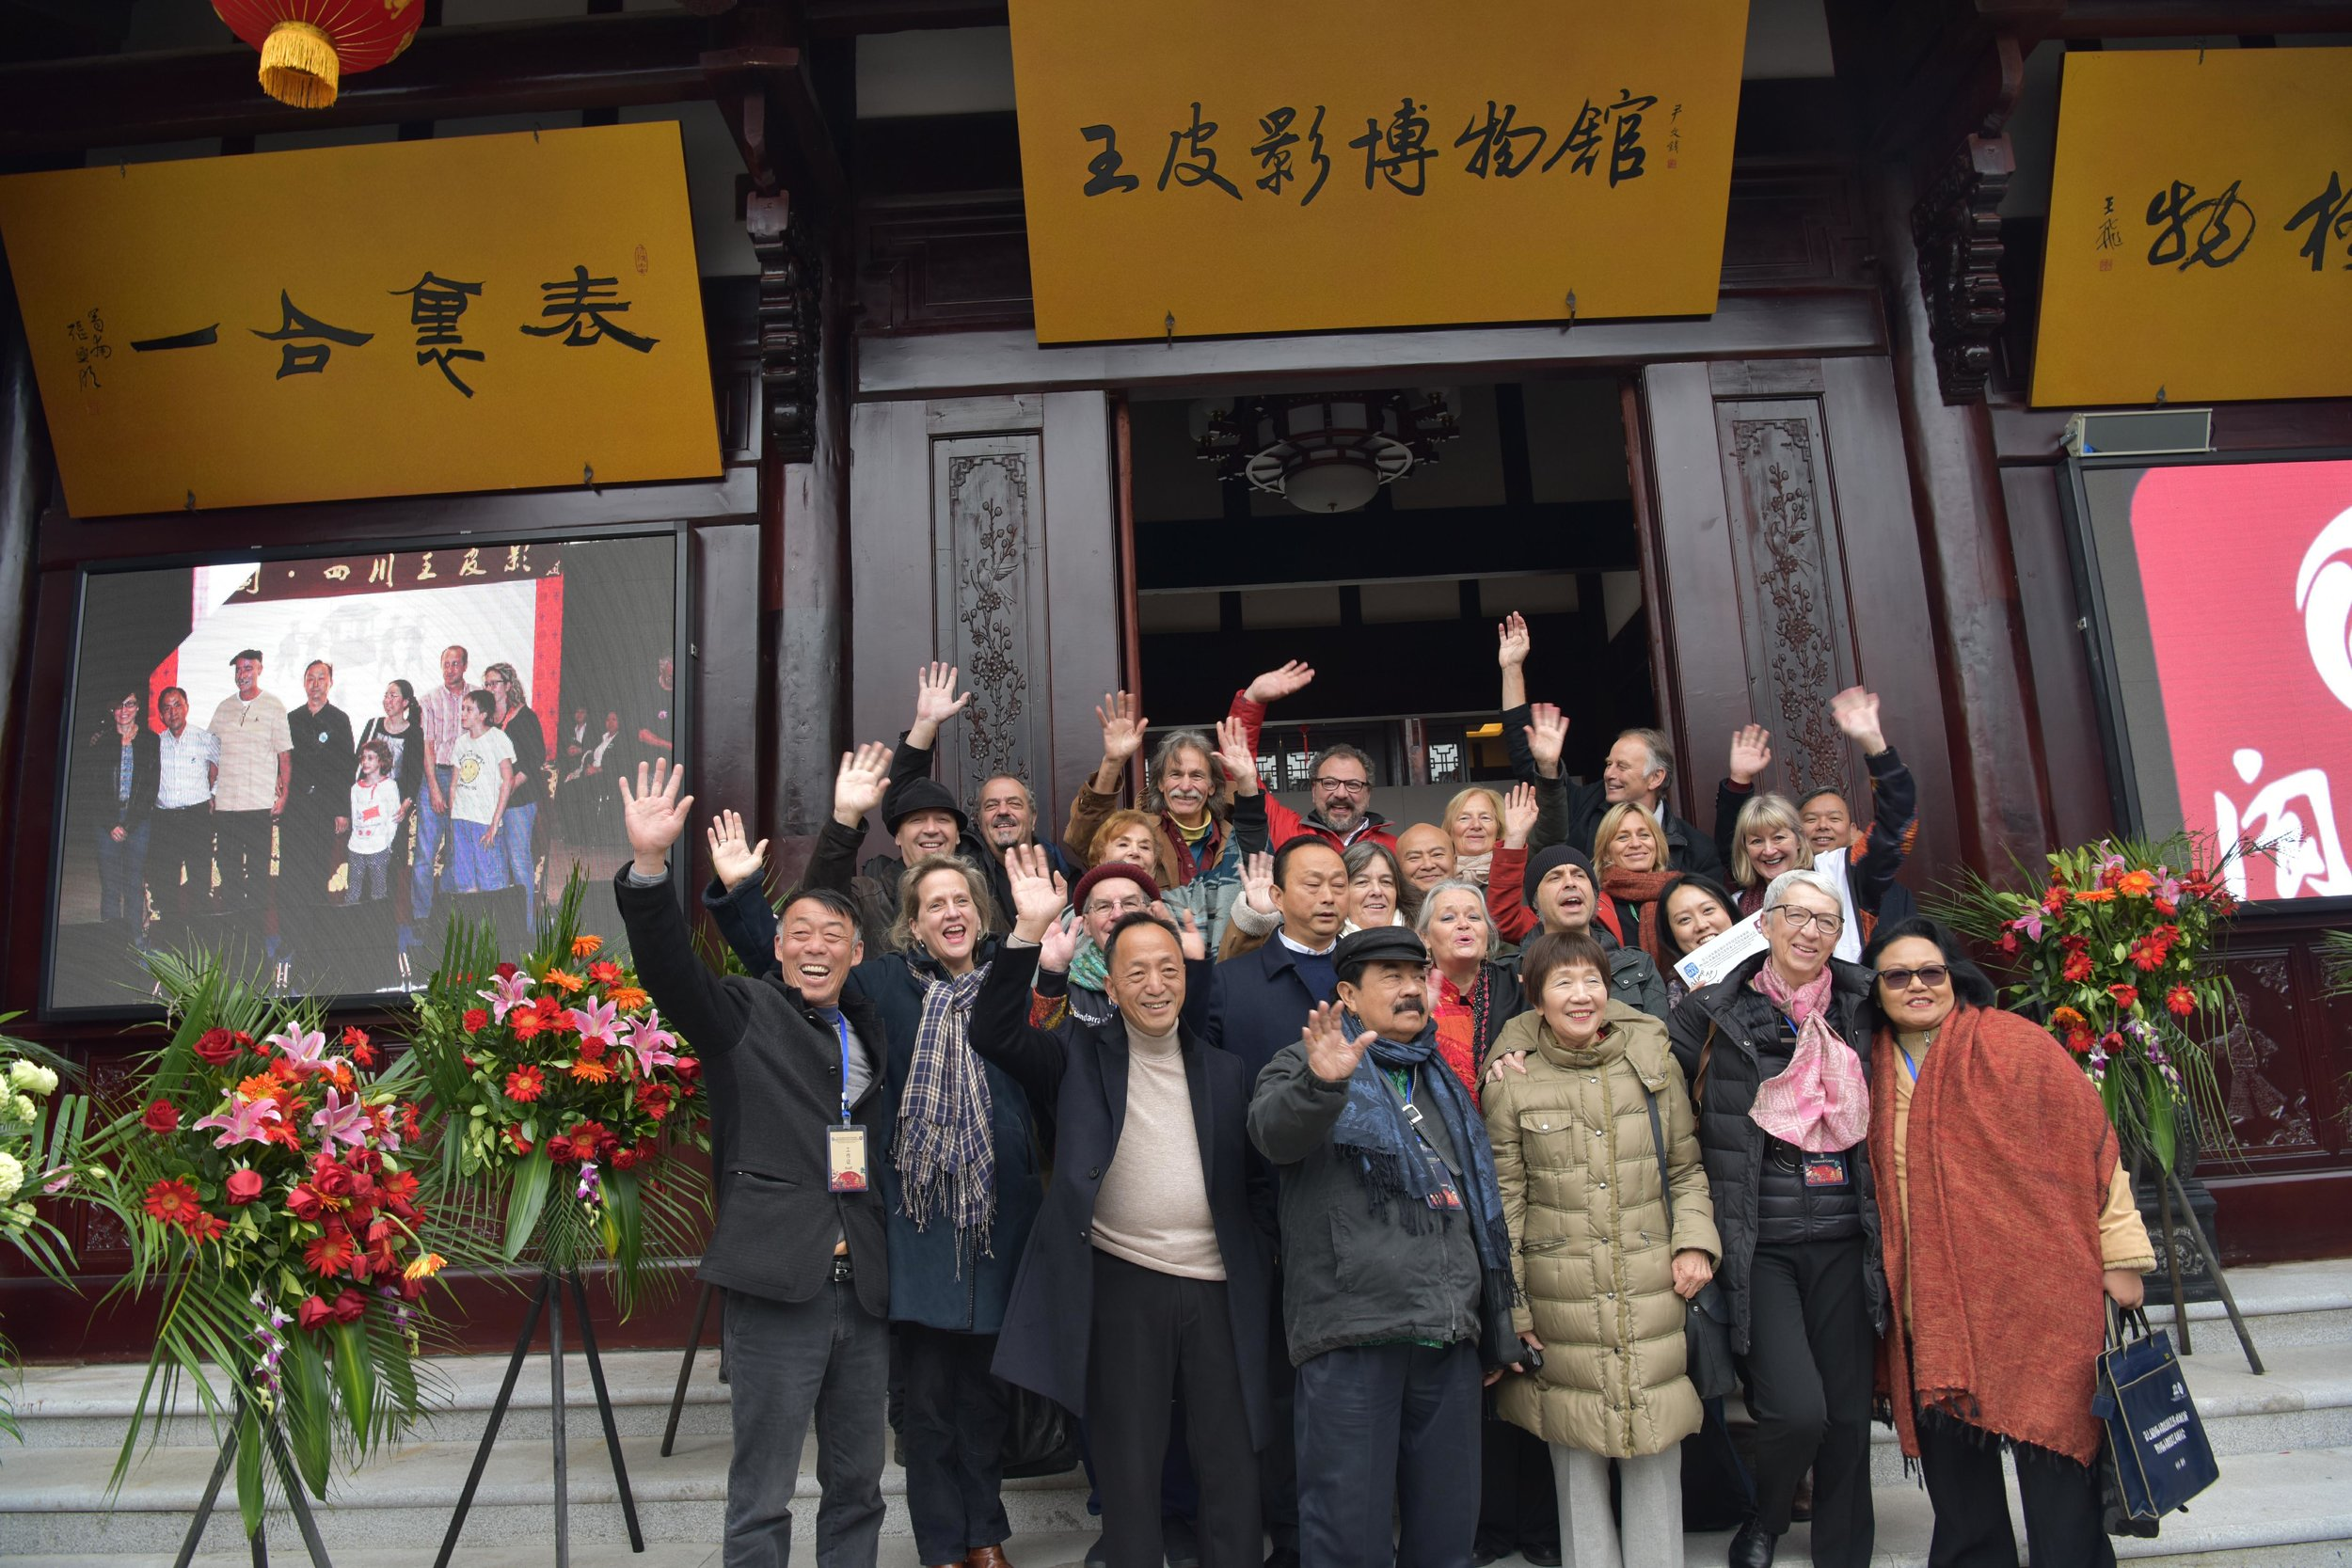 Photo courtesy OF UNIMA China. Outside Sichuan Wang's Shadow Puppet Troupe theatre and museum complex in Langzhong. Back row, L to R: Manuel Dias (puppeteer, Portugal), David Heesen (UNIMA-USA), Tito Lorefice (Argentina, President, UNIMA Professional Training Commission), Joanne Oussoren (UNIMA Netherlands), Frans Hakkemars (UNIMA Netherlands), Chinese gentleman (?)  Upper Middle row, L to R: Nuno do Ó (musician, Portugal), Carol Sterling (UNIMA-USA), Maria José Machado Santos (President, UNIMA Portugal), Chinese gentleman (?), Cariad Astles (British UNIMA, President, UNIMA Research Commission), Julia Davis (UNIMA Australia)  Lower Middle row, L to R: Chinese gentleman (?), Louise Lapointe (Canada, AQM, President, UNIMA International Festivals Commission), Richard Hart (President, UNIMA Australia), Wang Biao (Director, Sichuan Wang's Shadow Puppet Troupe), Karen Smith (UNIMA-USA, Vice President, UNIMA), Tó Zé Bexiga (musician, Portugal), Jinyoung Kim (UNIMA Korea)  Front row, L to R: Wang Fang (Sichuan Wang's Shadow Puppet Troupe), Samodra Sriwidjaja (President, UNIMA Indonesia), Yasuko Senda (UNIMA Japan-Nihon UNIMA), Lucile Bodson (Treasurer, UNIMA), Yulita Samodra (UNIMA Indonesia).